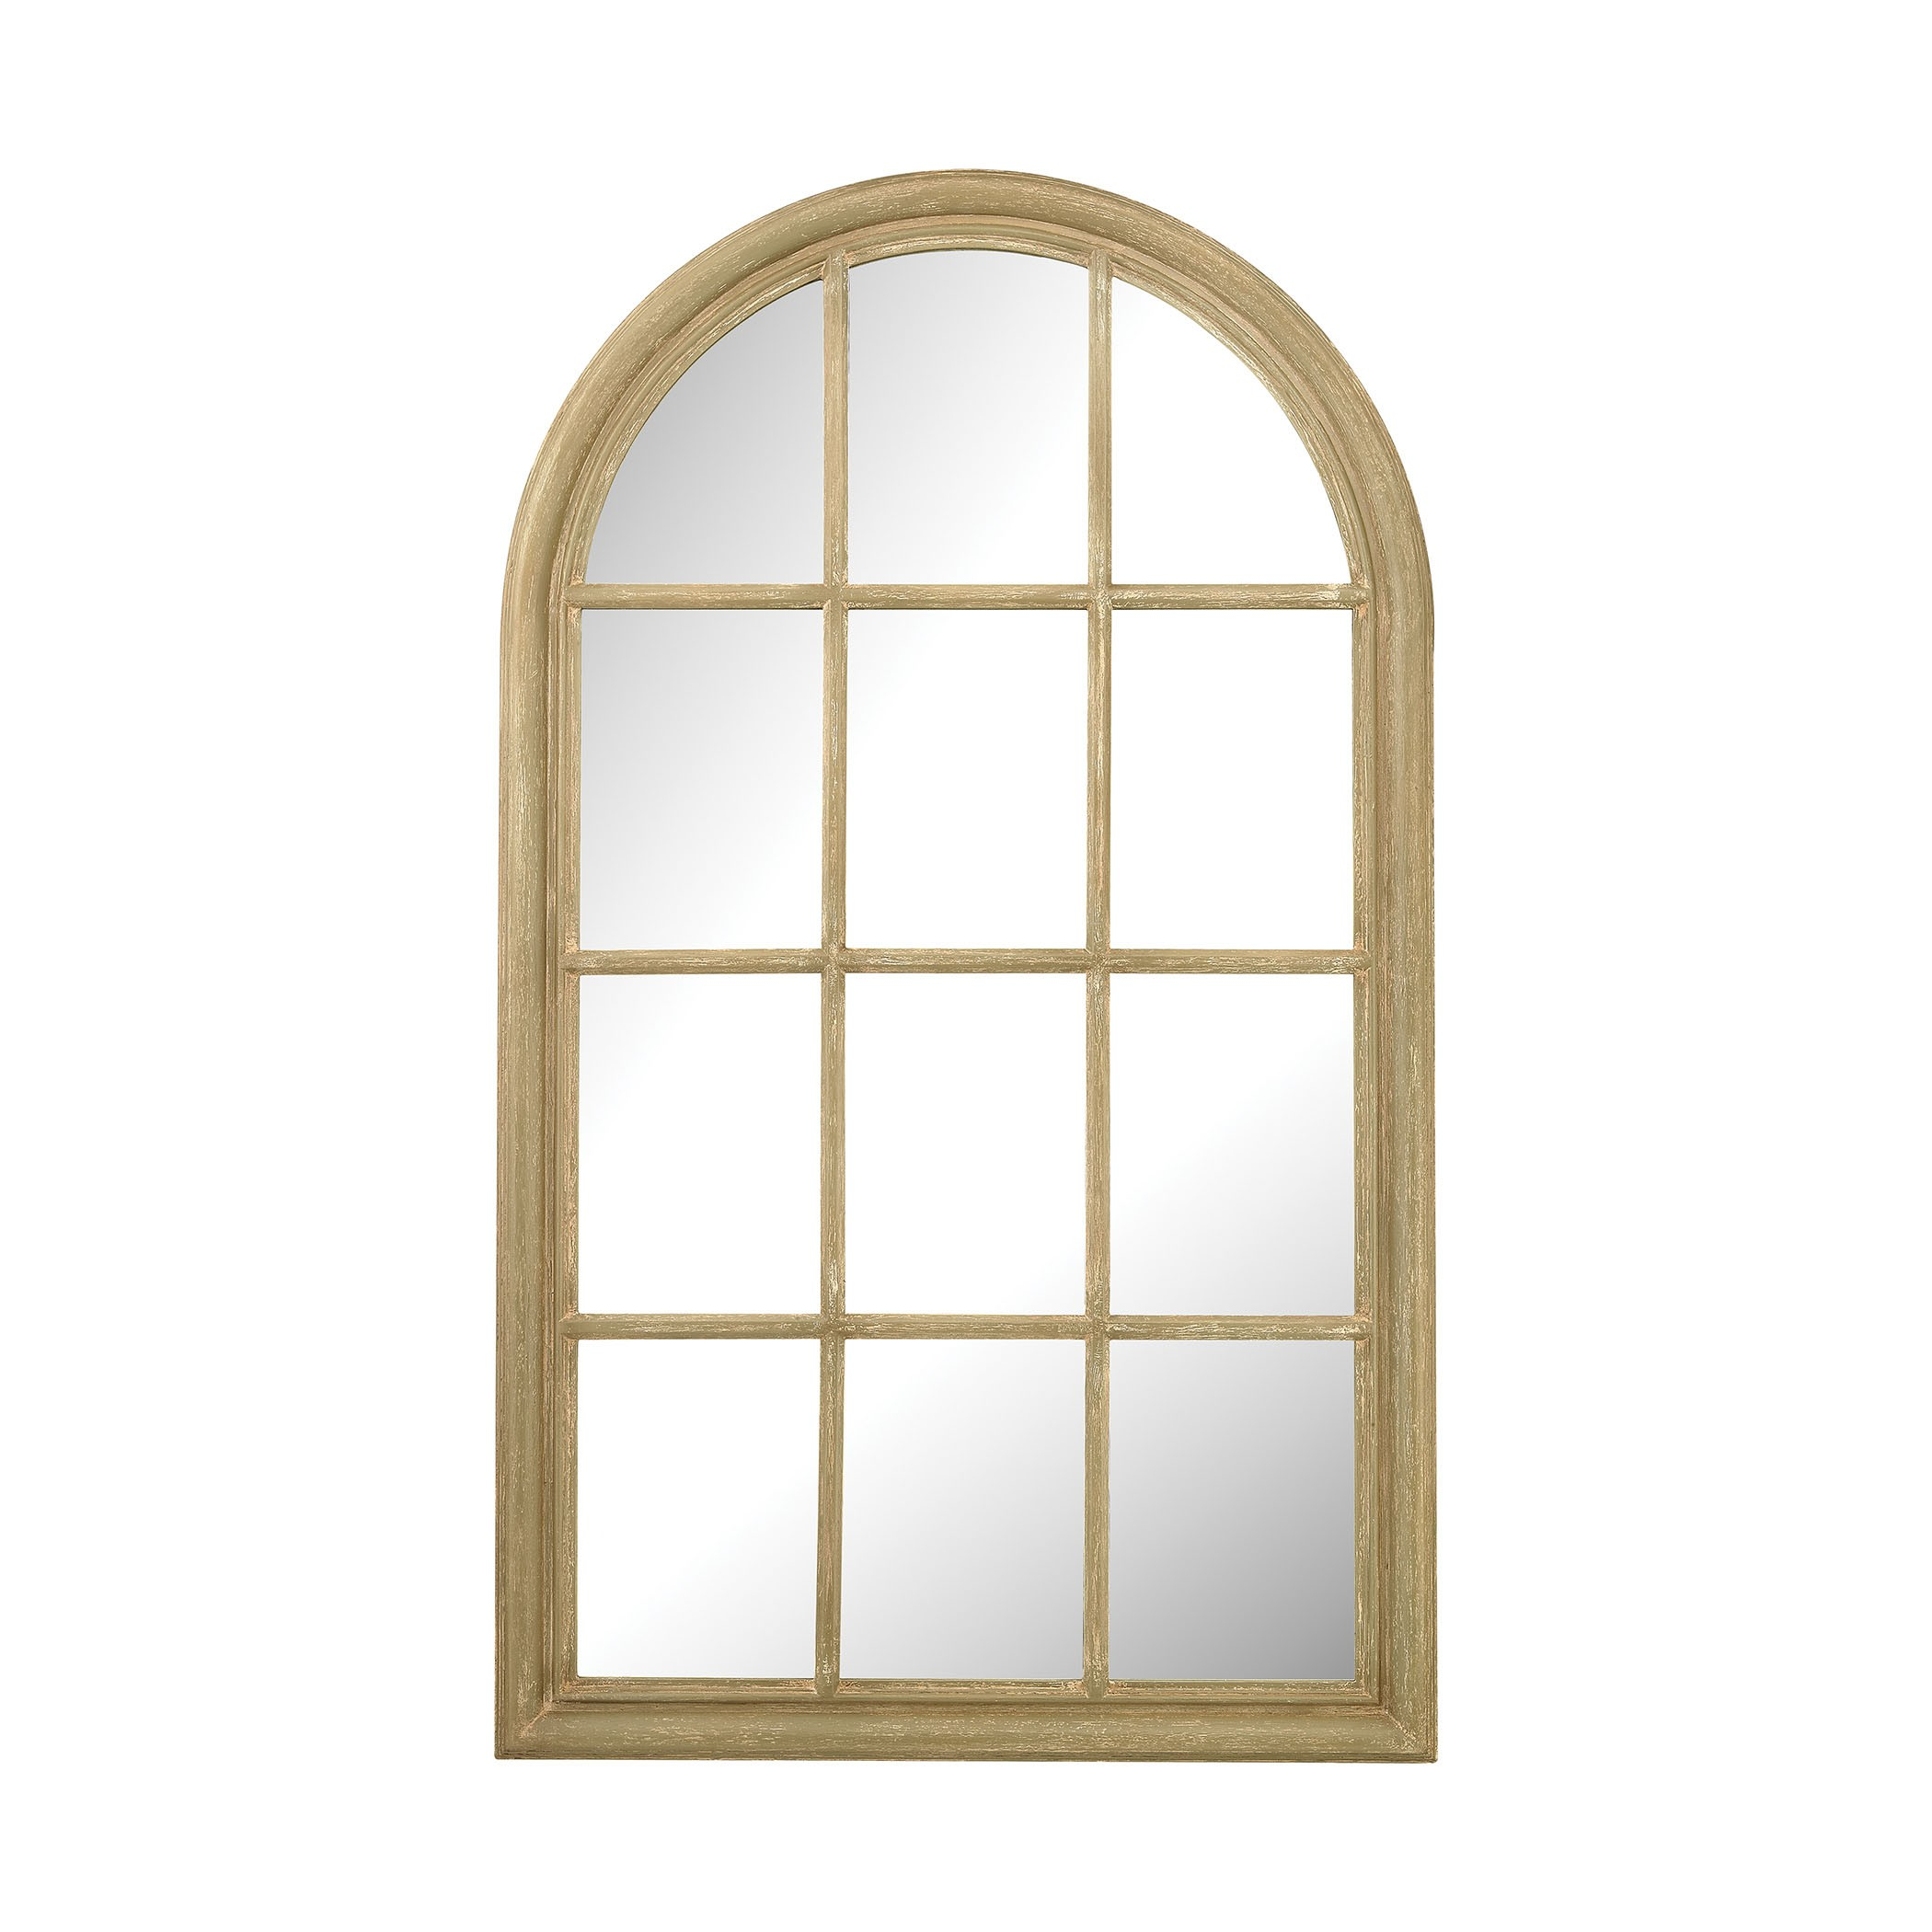 Arched window pane mirror interiordecorating for Window mirror